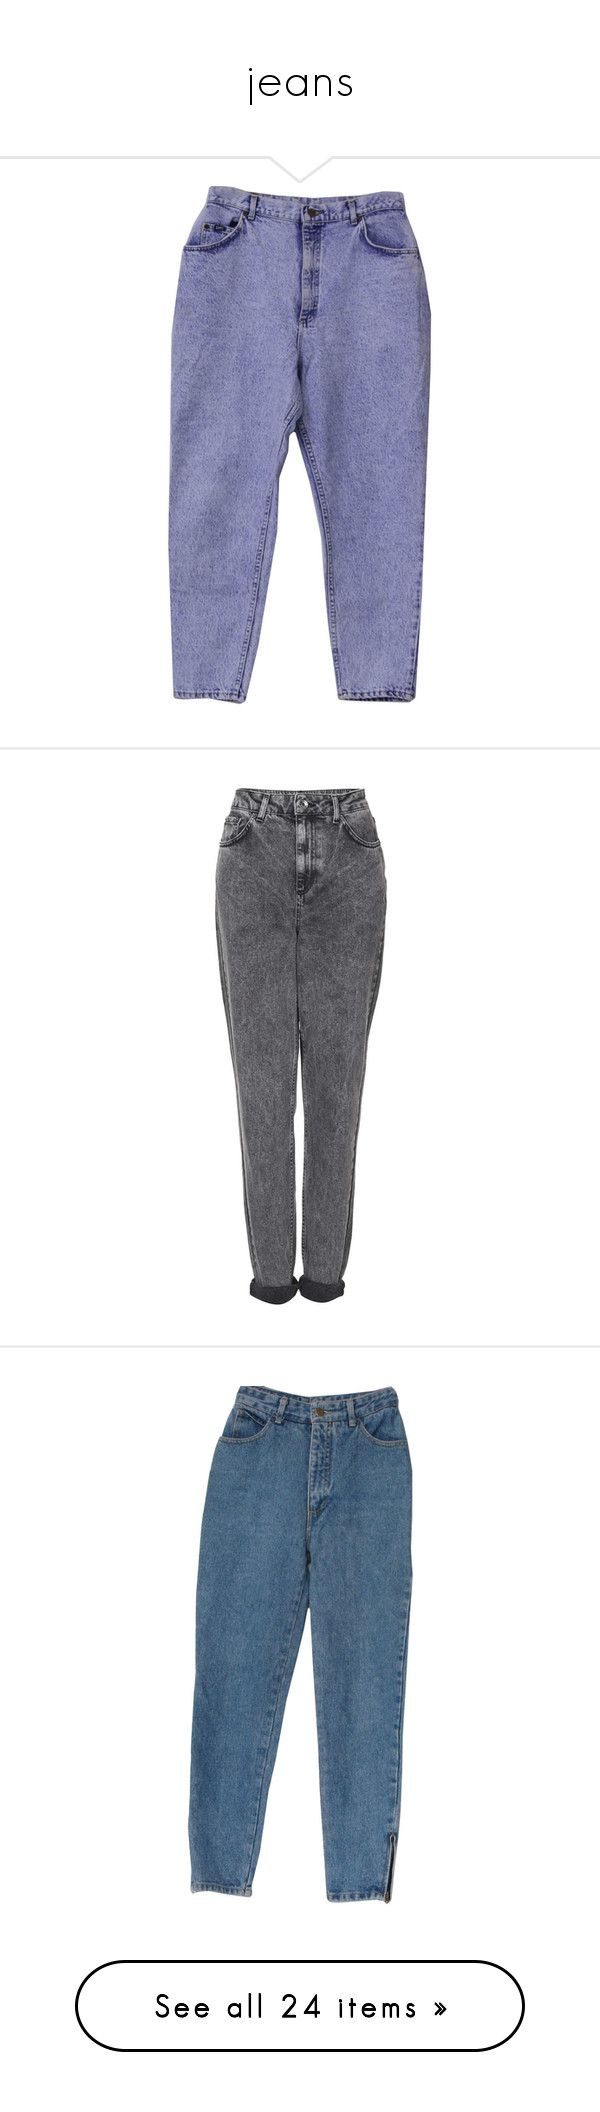 """""""jeans"""" by humxn ❤ liked on Polyvore featuring pants, jeans, bottoms, trousers, pantalones, topshop, black, tall boyfriend jeans, tall jeans and boyfriend fit jeans"""